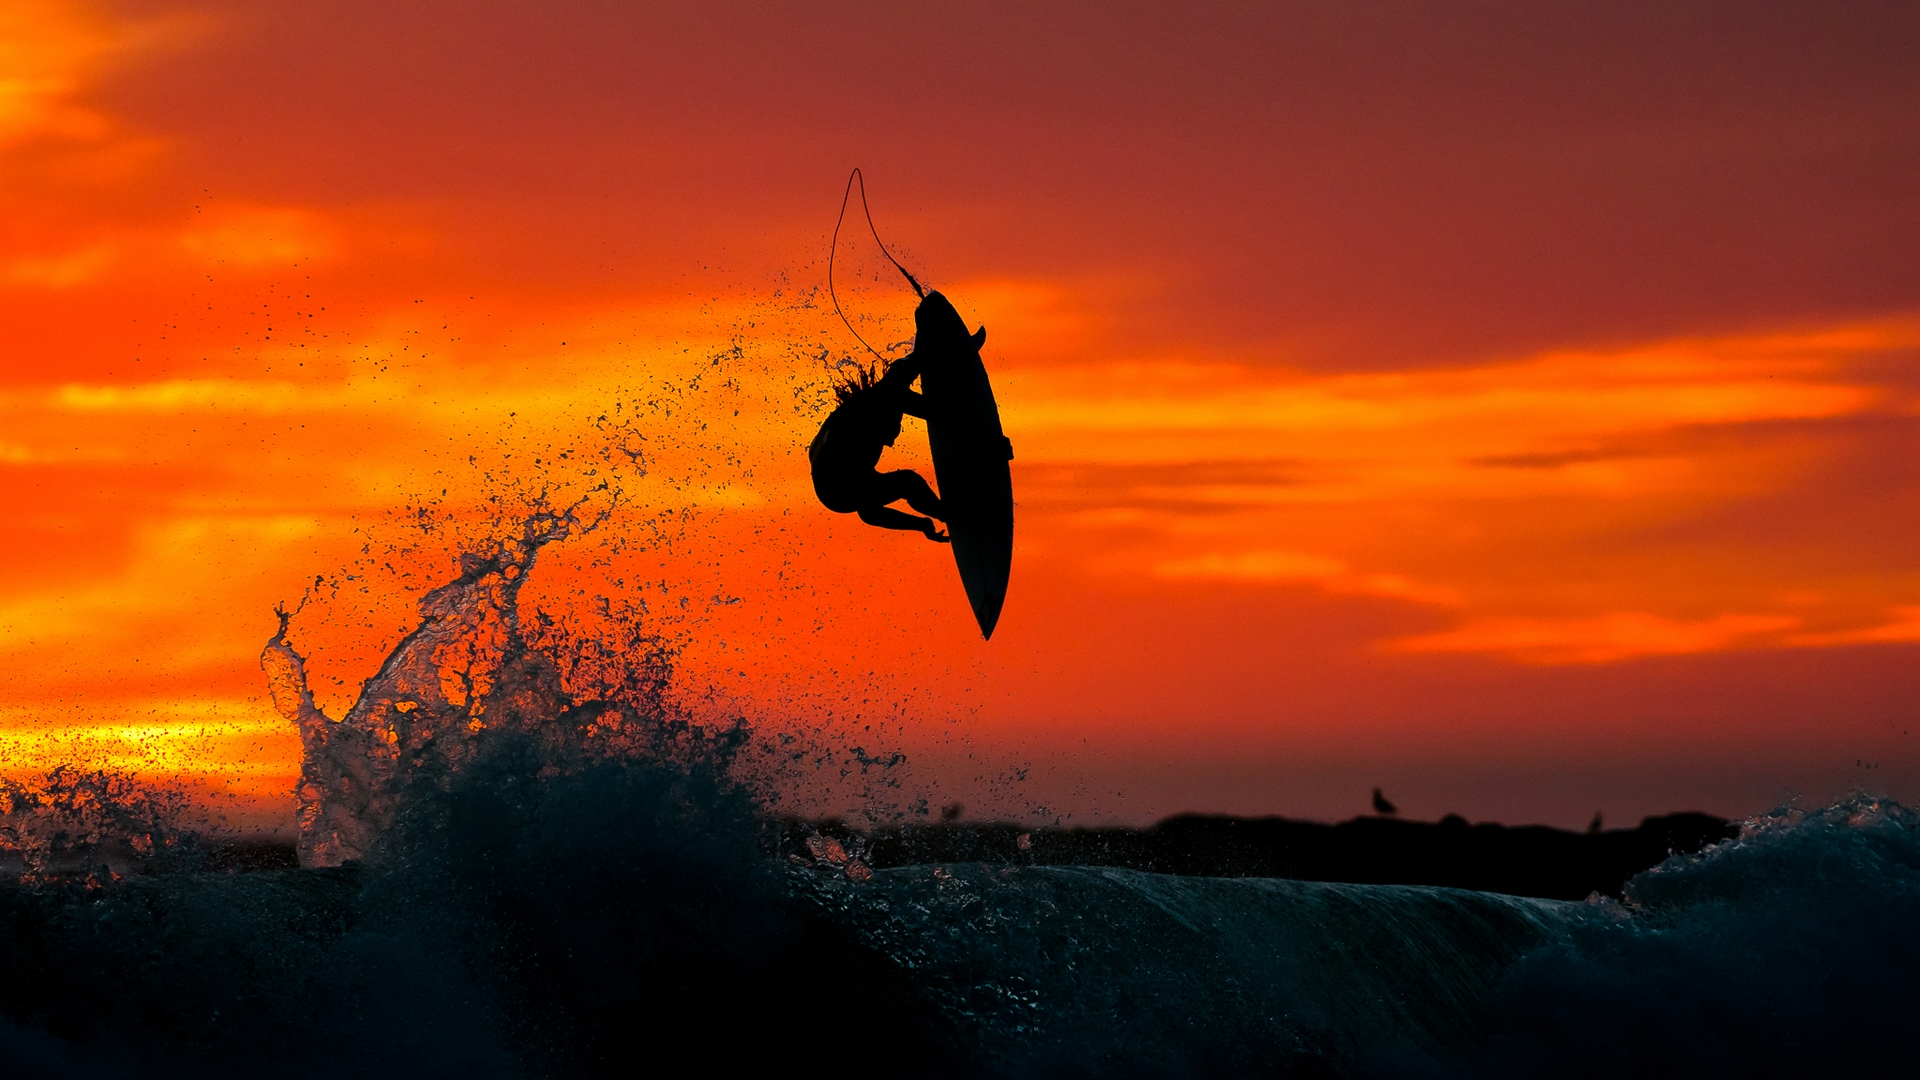 Surfing Wallpapers - Wallpaper, High Definition, High ...